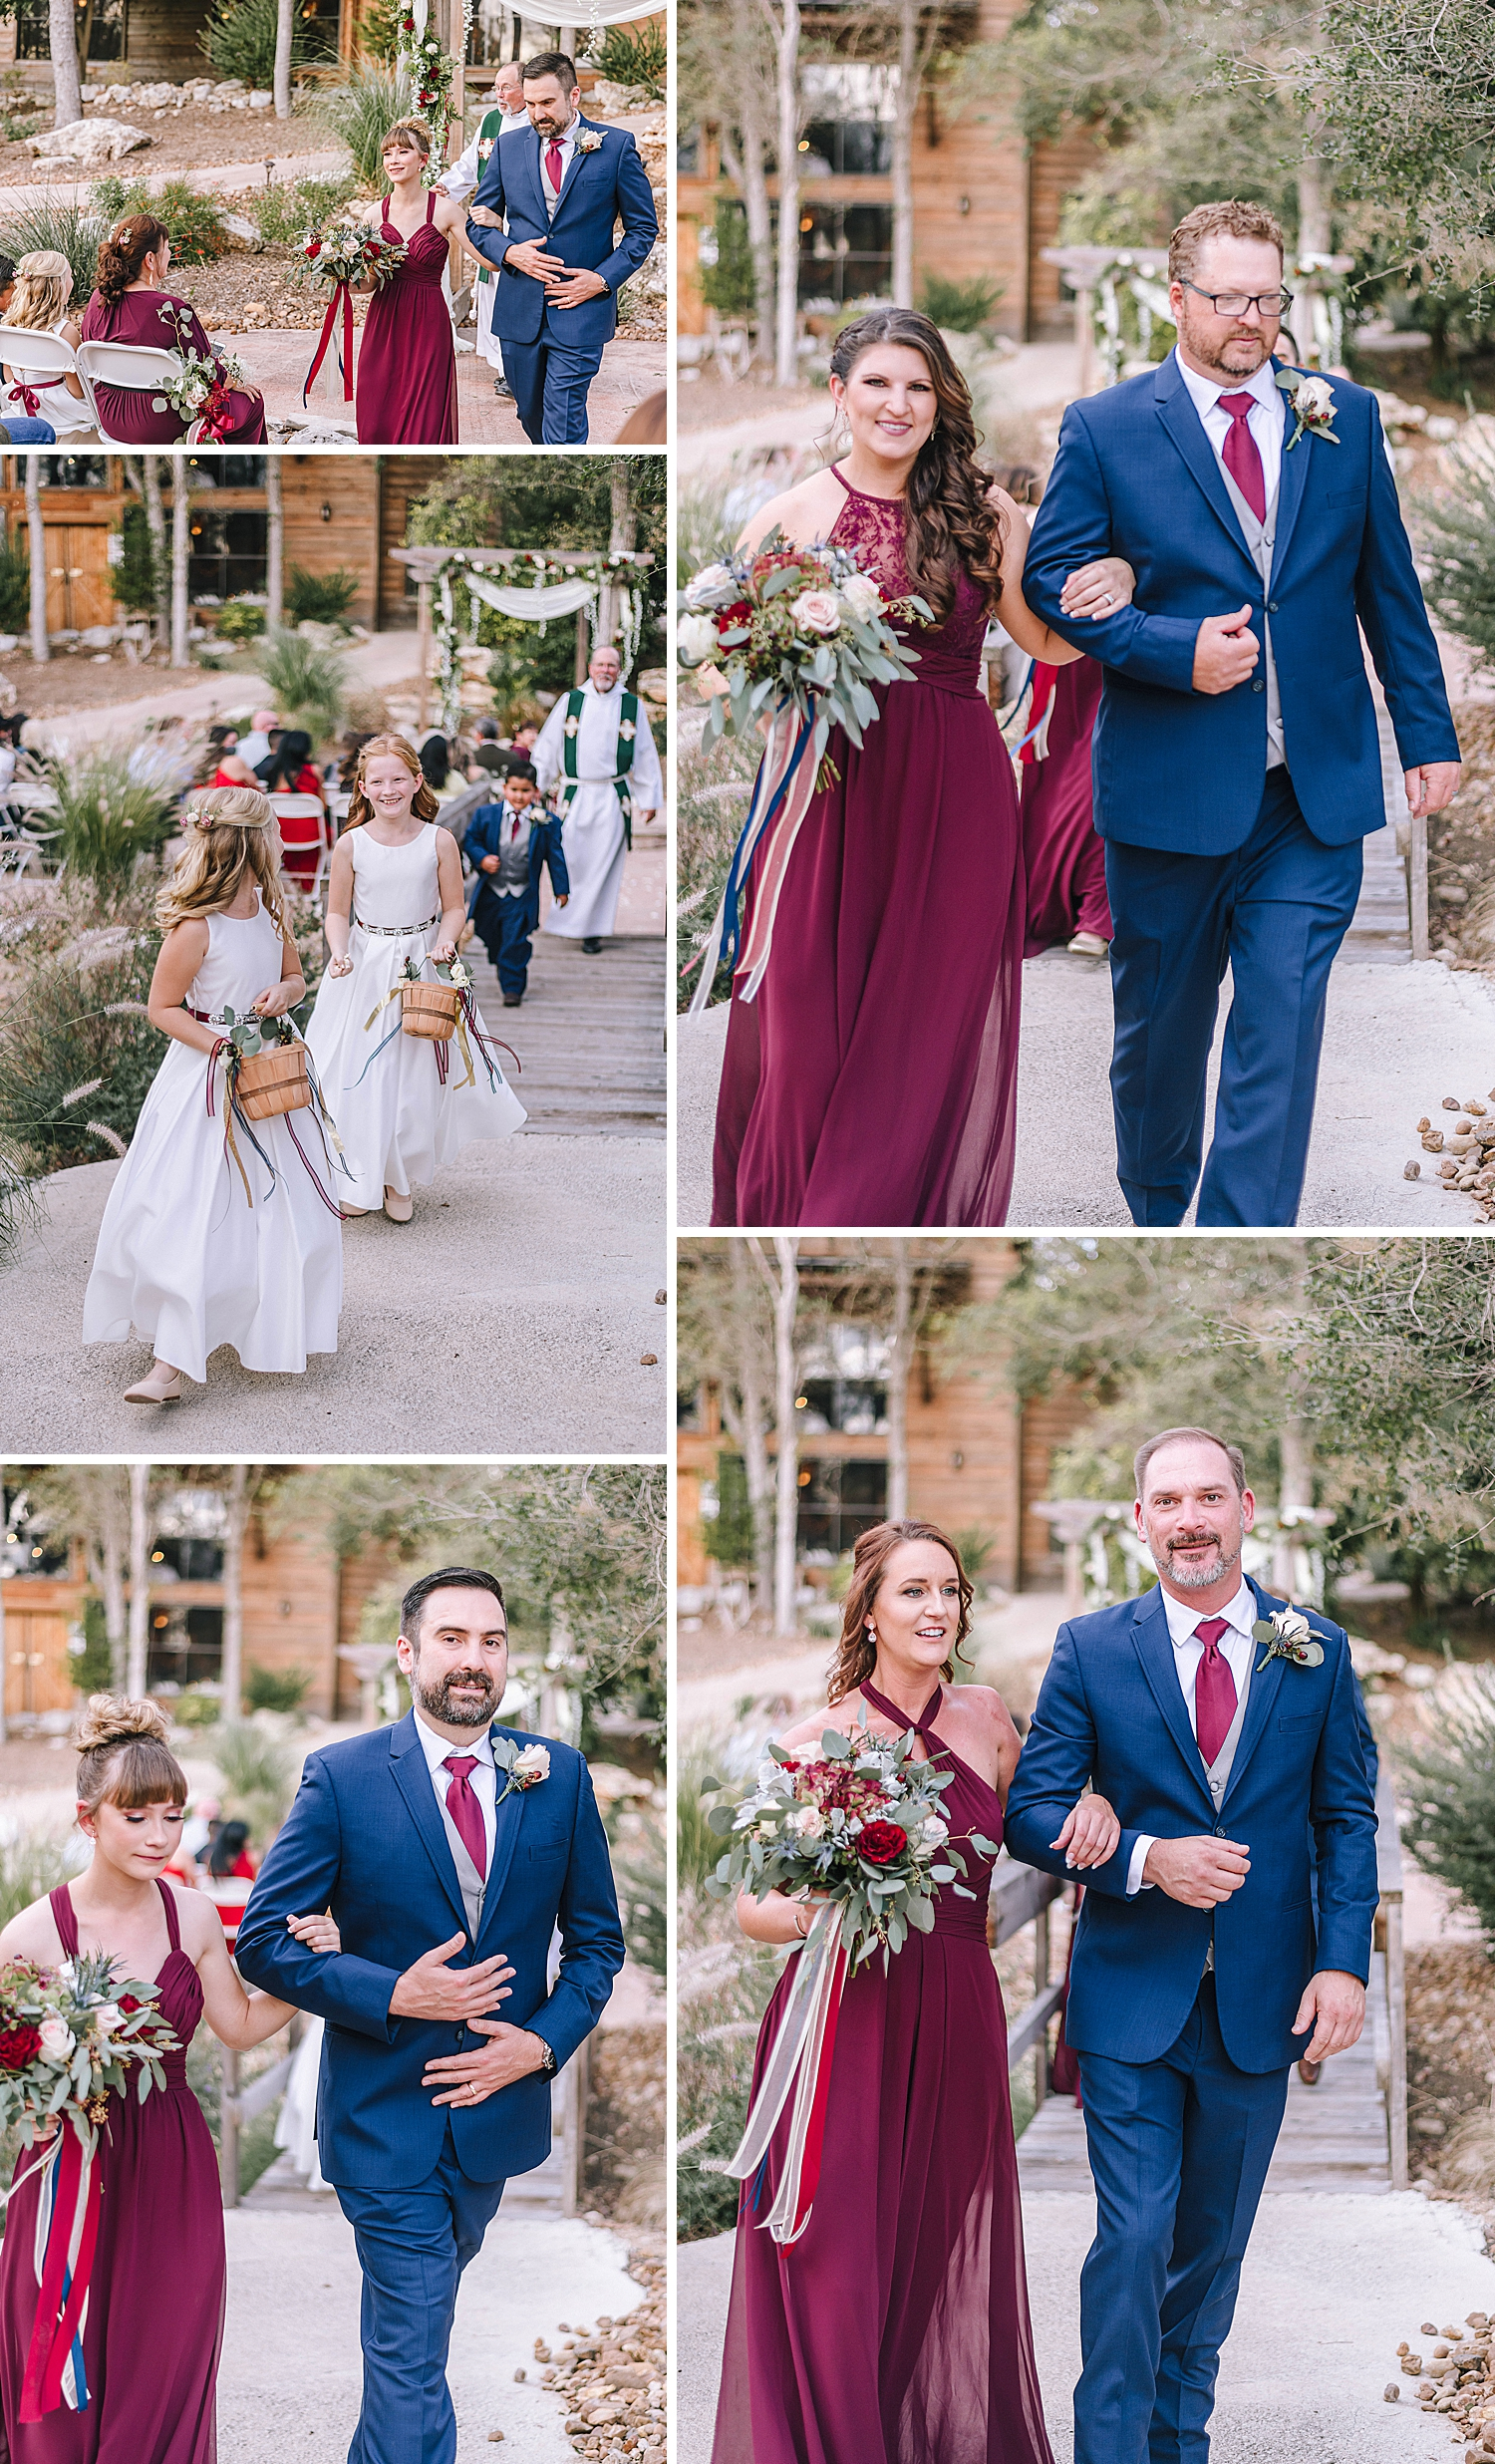 Geronimo-Oaks-Wedding-Venue-Seguin-Texas-Elegant-Navy-Burgundy-Wedding-Carly-Barton-Photography_0029.jpg